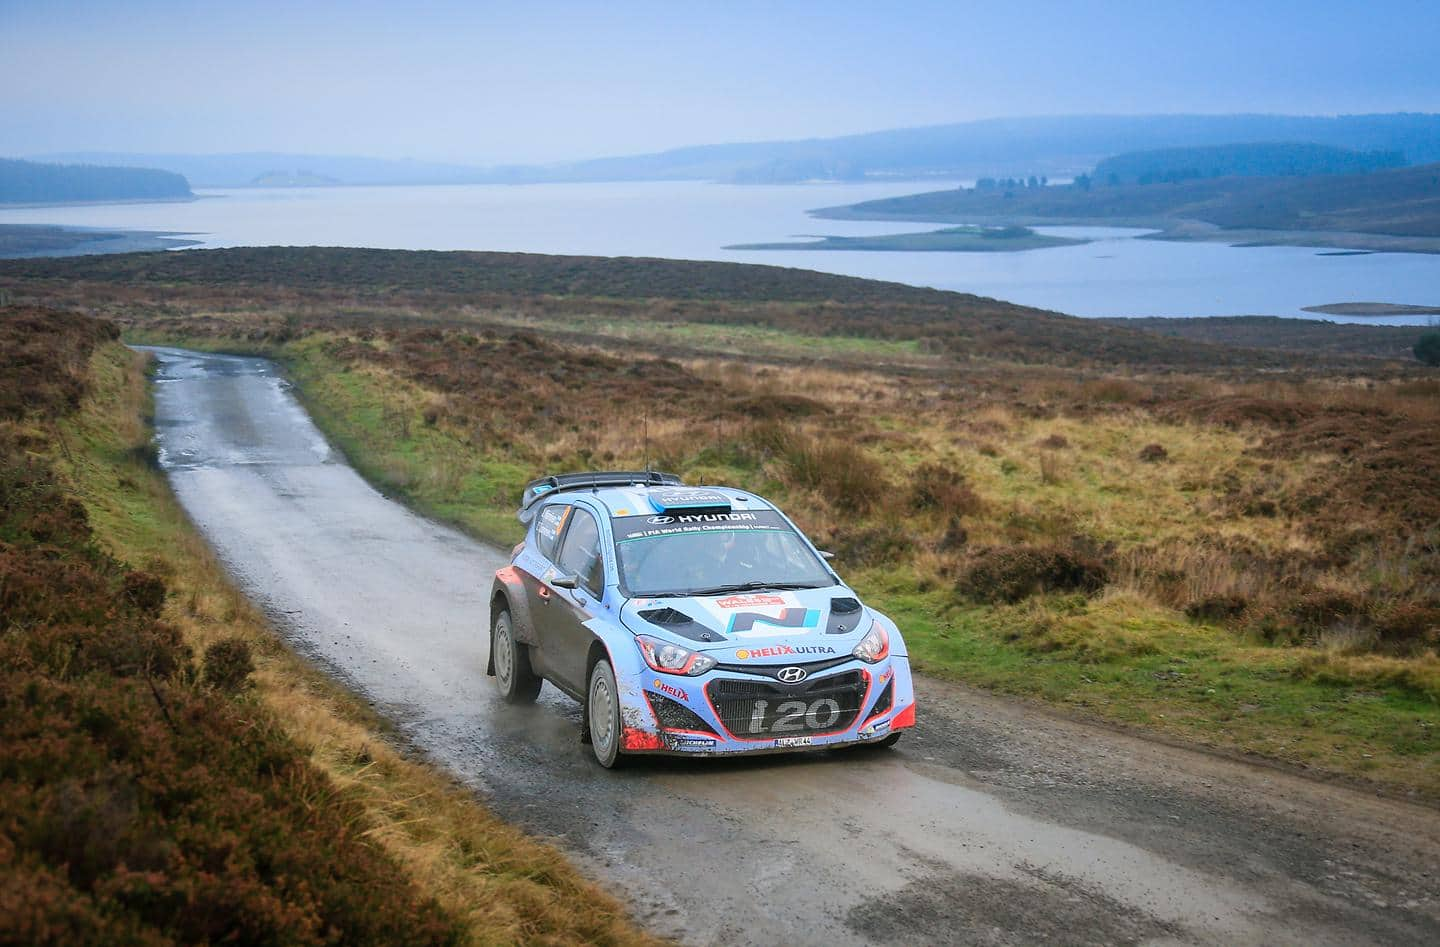 Hyundai Shell World Rally Team brings debut WRC season to a close with 3 car finish in GB